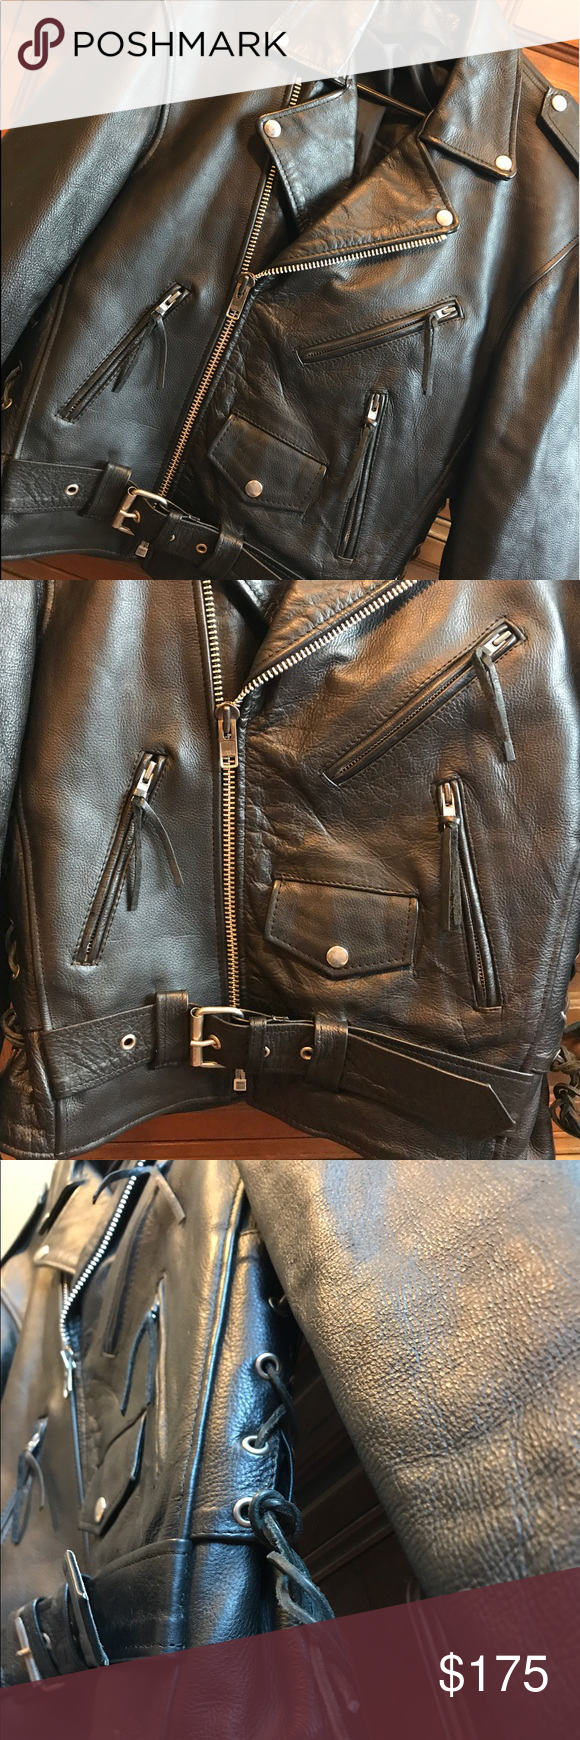 Genuine Leather Moto Jacket 🖤 (con imágenes)